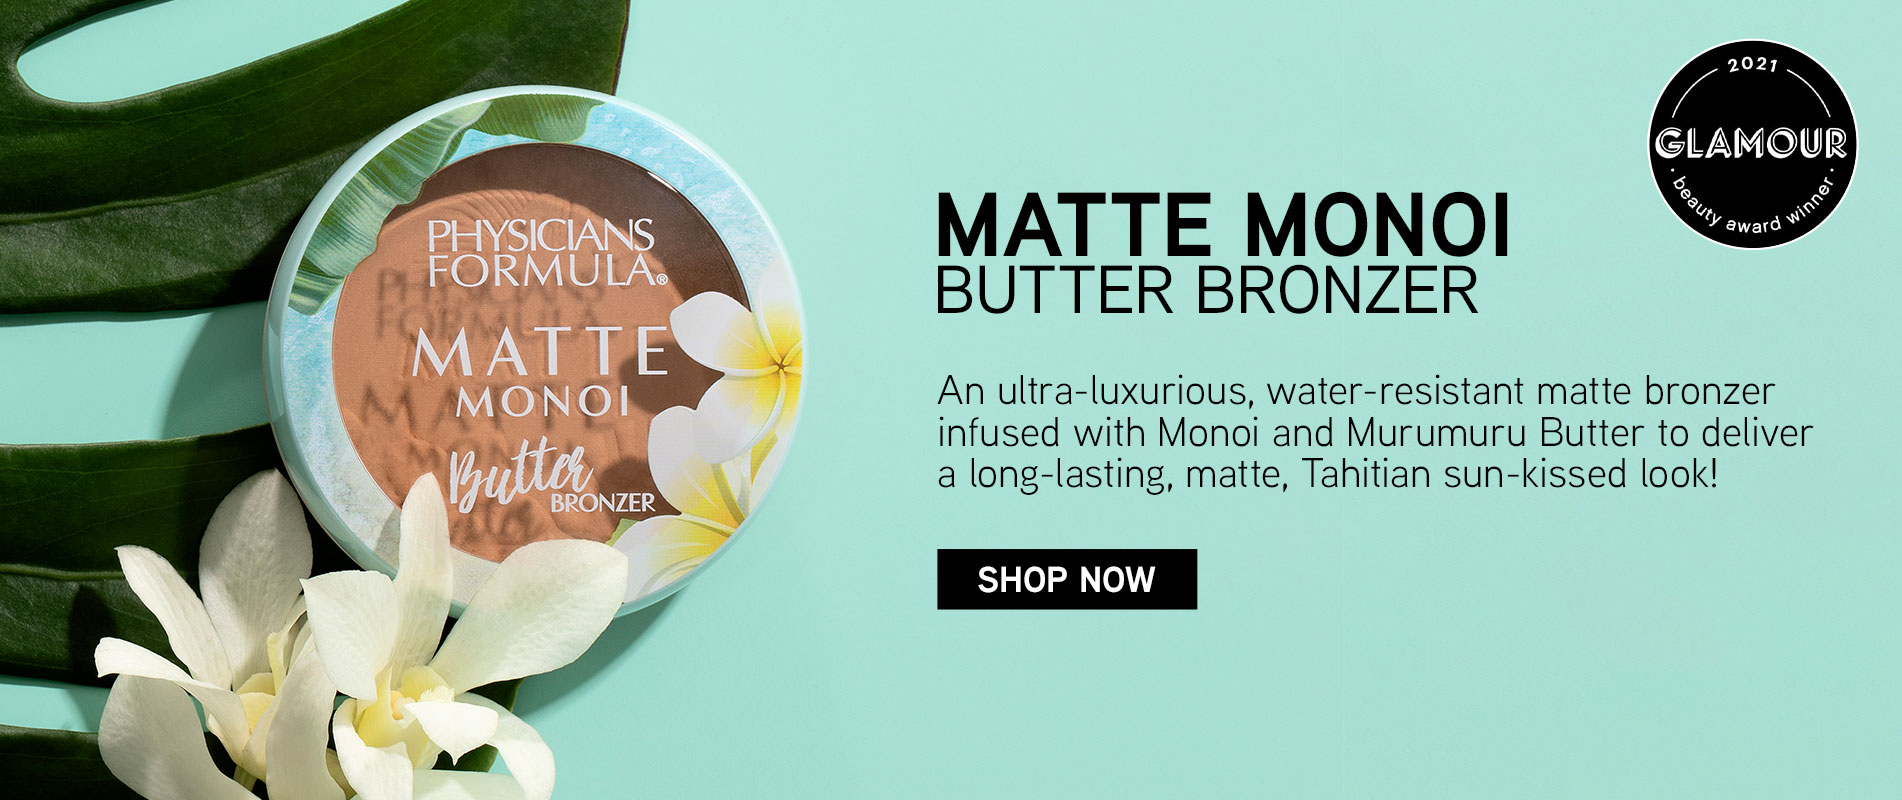 Physicians Formula | Matte Monoi Butter Bronzer | An ultra-luxurious, water - resistant matter bronzer infused with Monoi and Murumuru  Butter to deliver a long-lasting, matte, Tahitian sun-kissed look| CLICK HERE TO SHOP NOW